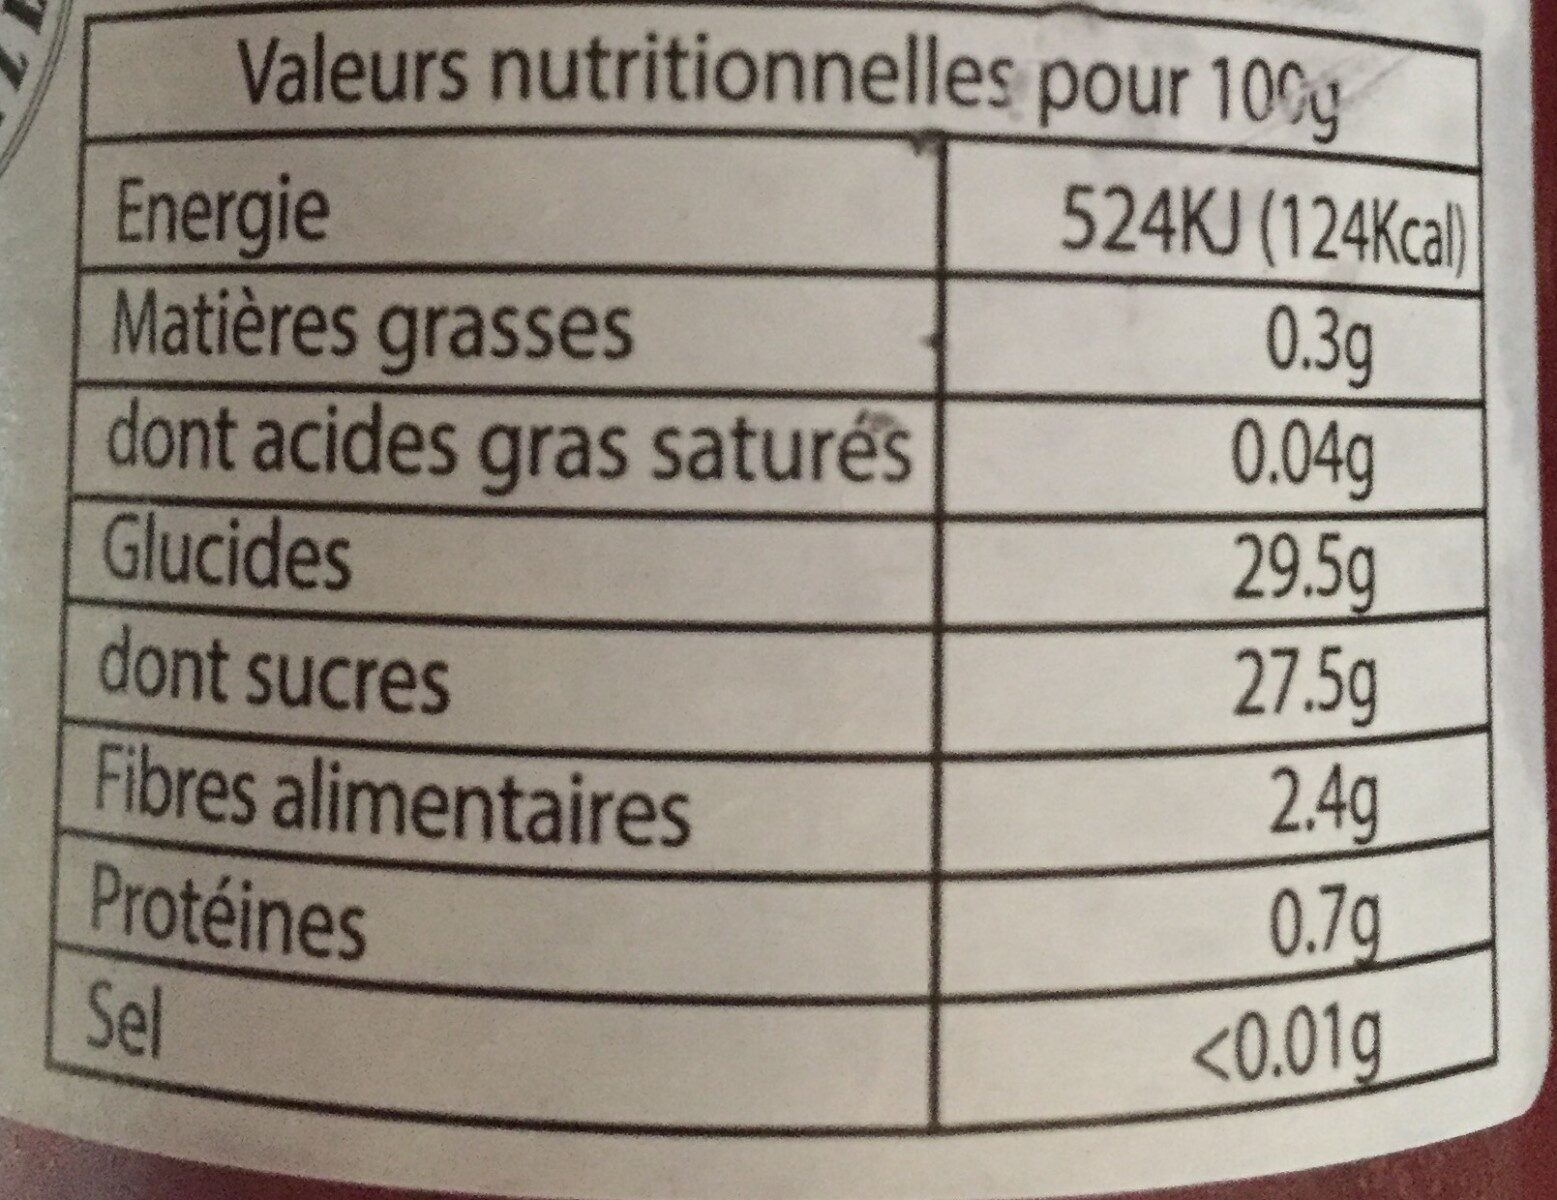 Coulis de fruits rouges - Informations nutritionnelles - fr